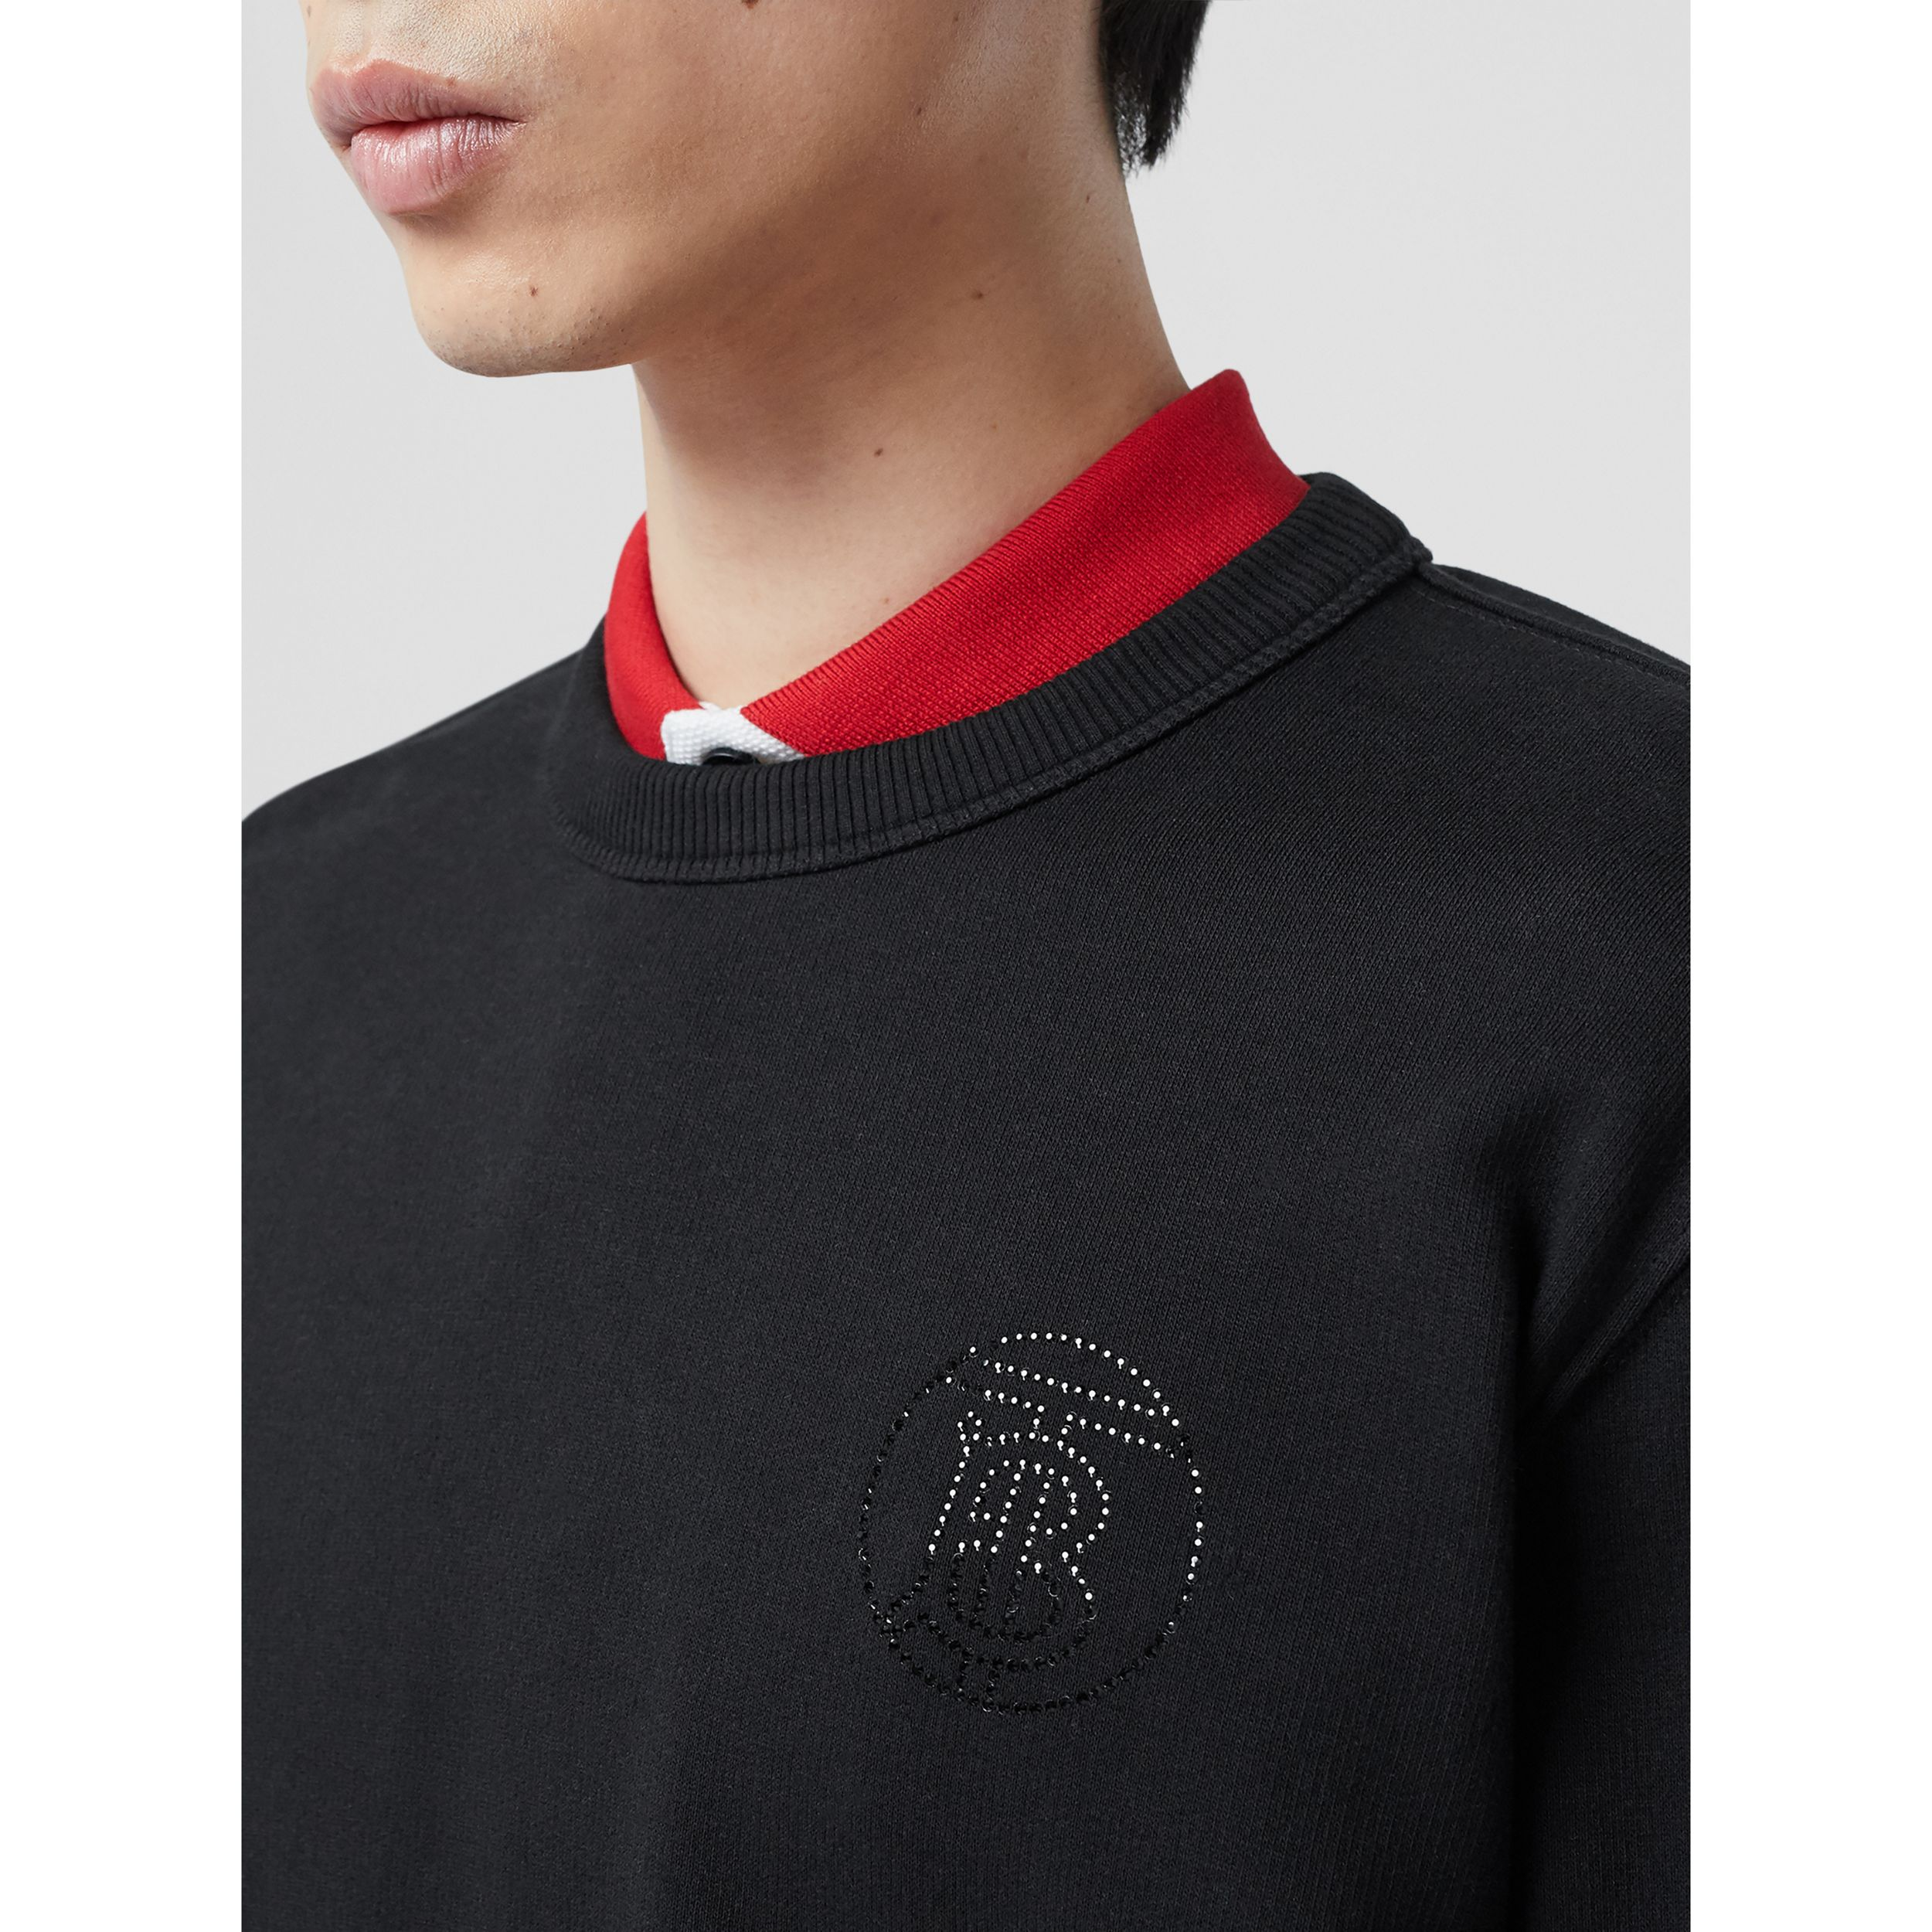 Crystal Monogram Motif Cotton Sweatshirt in Black - Men | Burberry - 2